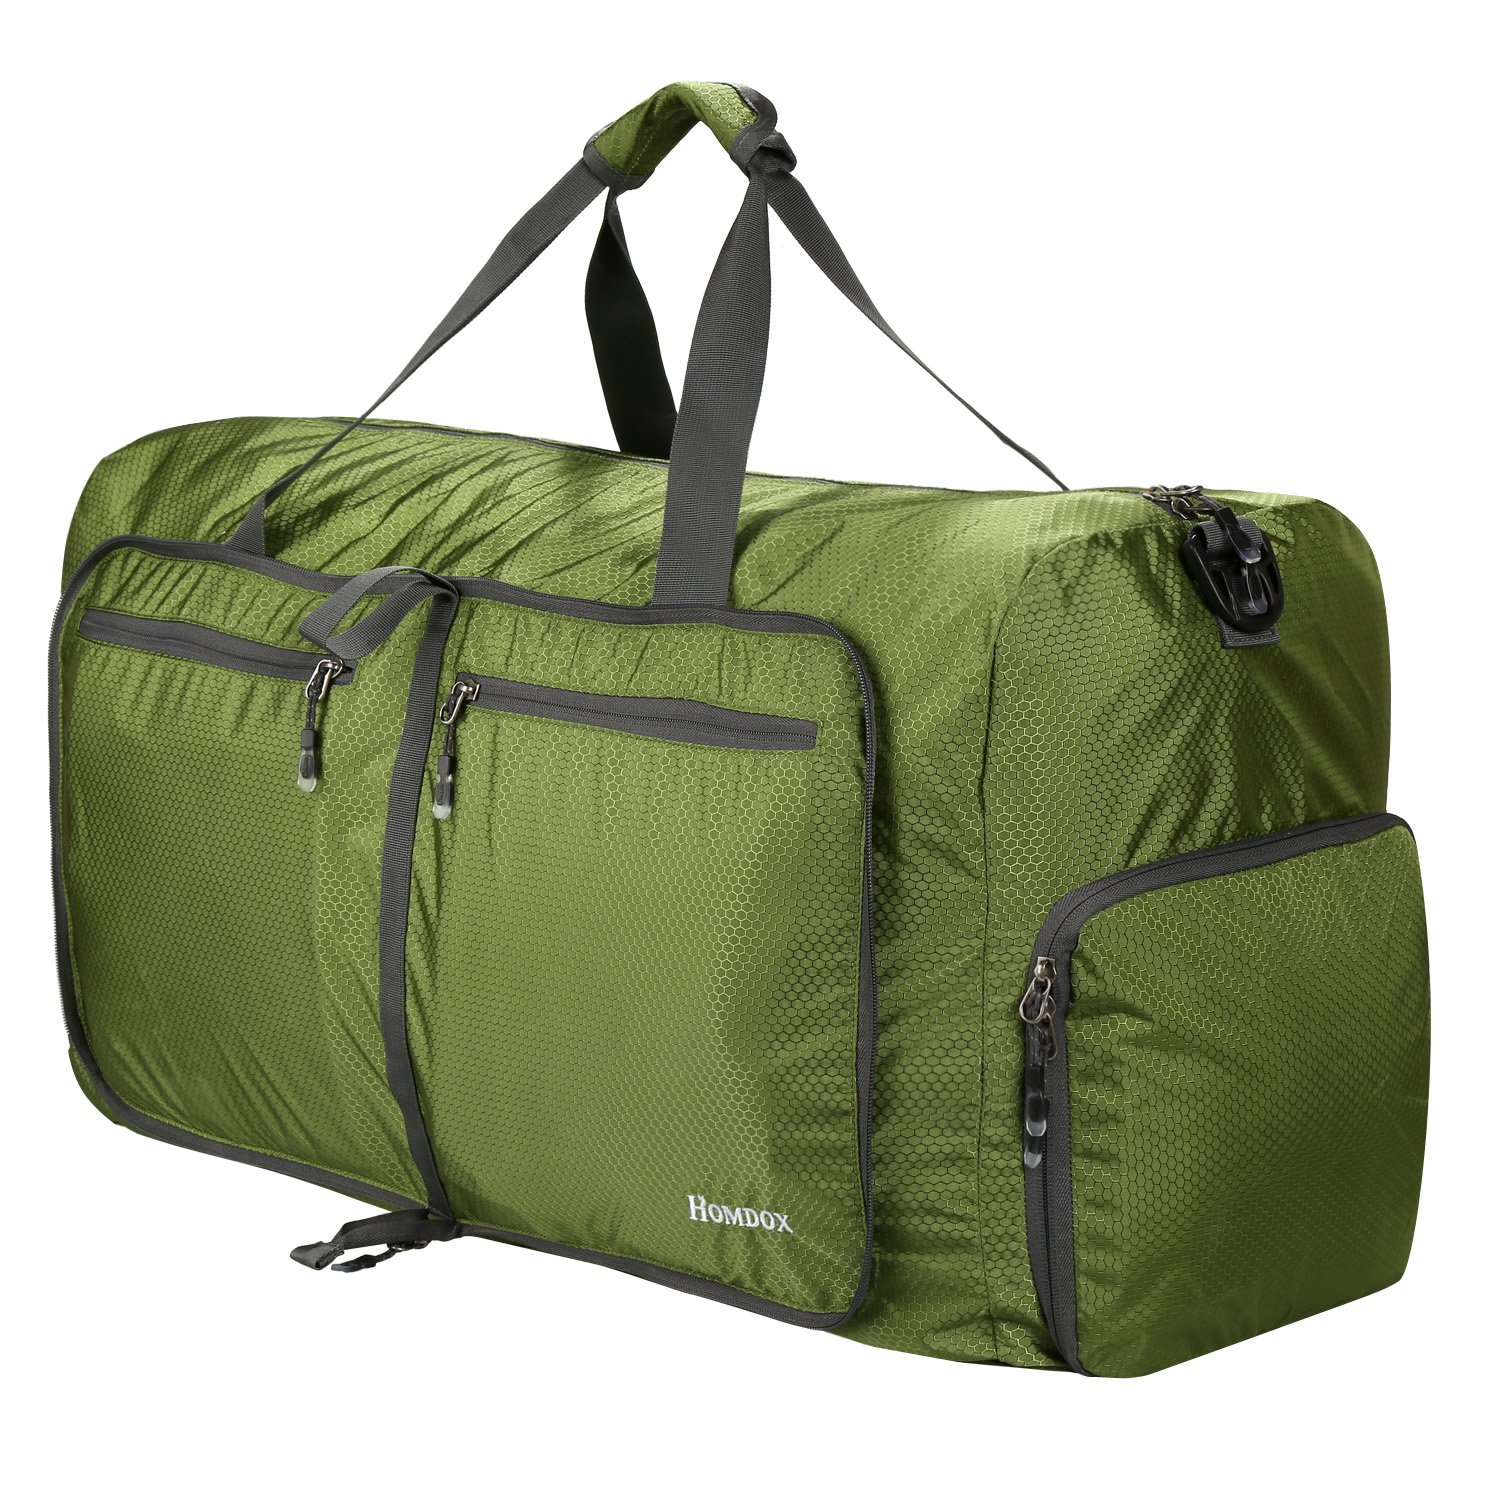 Homodox Foldable Duffle Bag, Extra Large Extra Strong Storage Bag, Shopping and Travel Bag (80L - Dark Green)